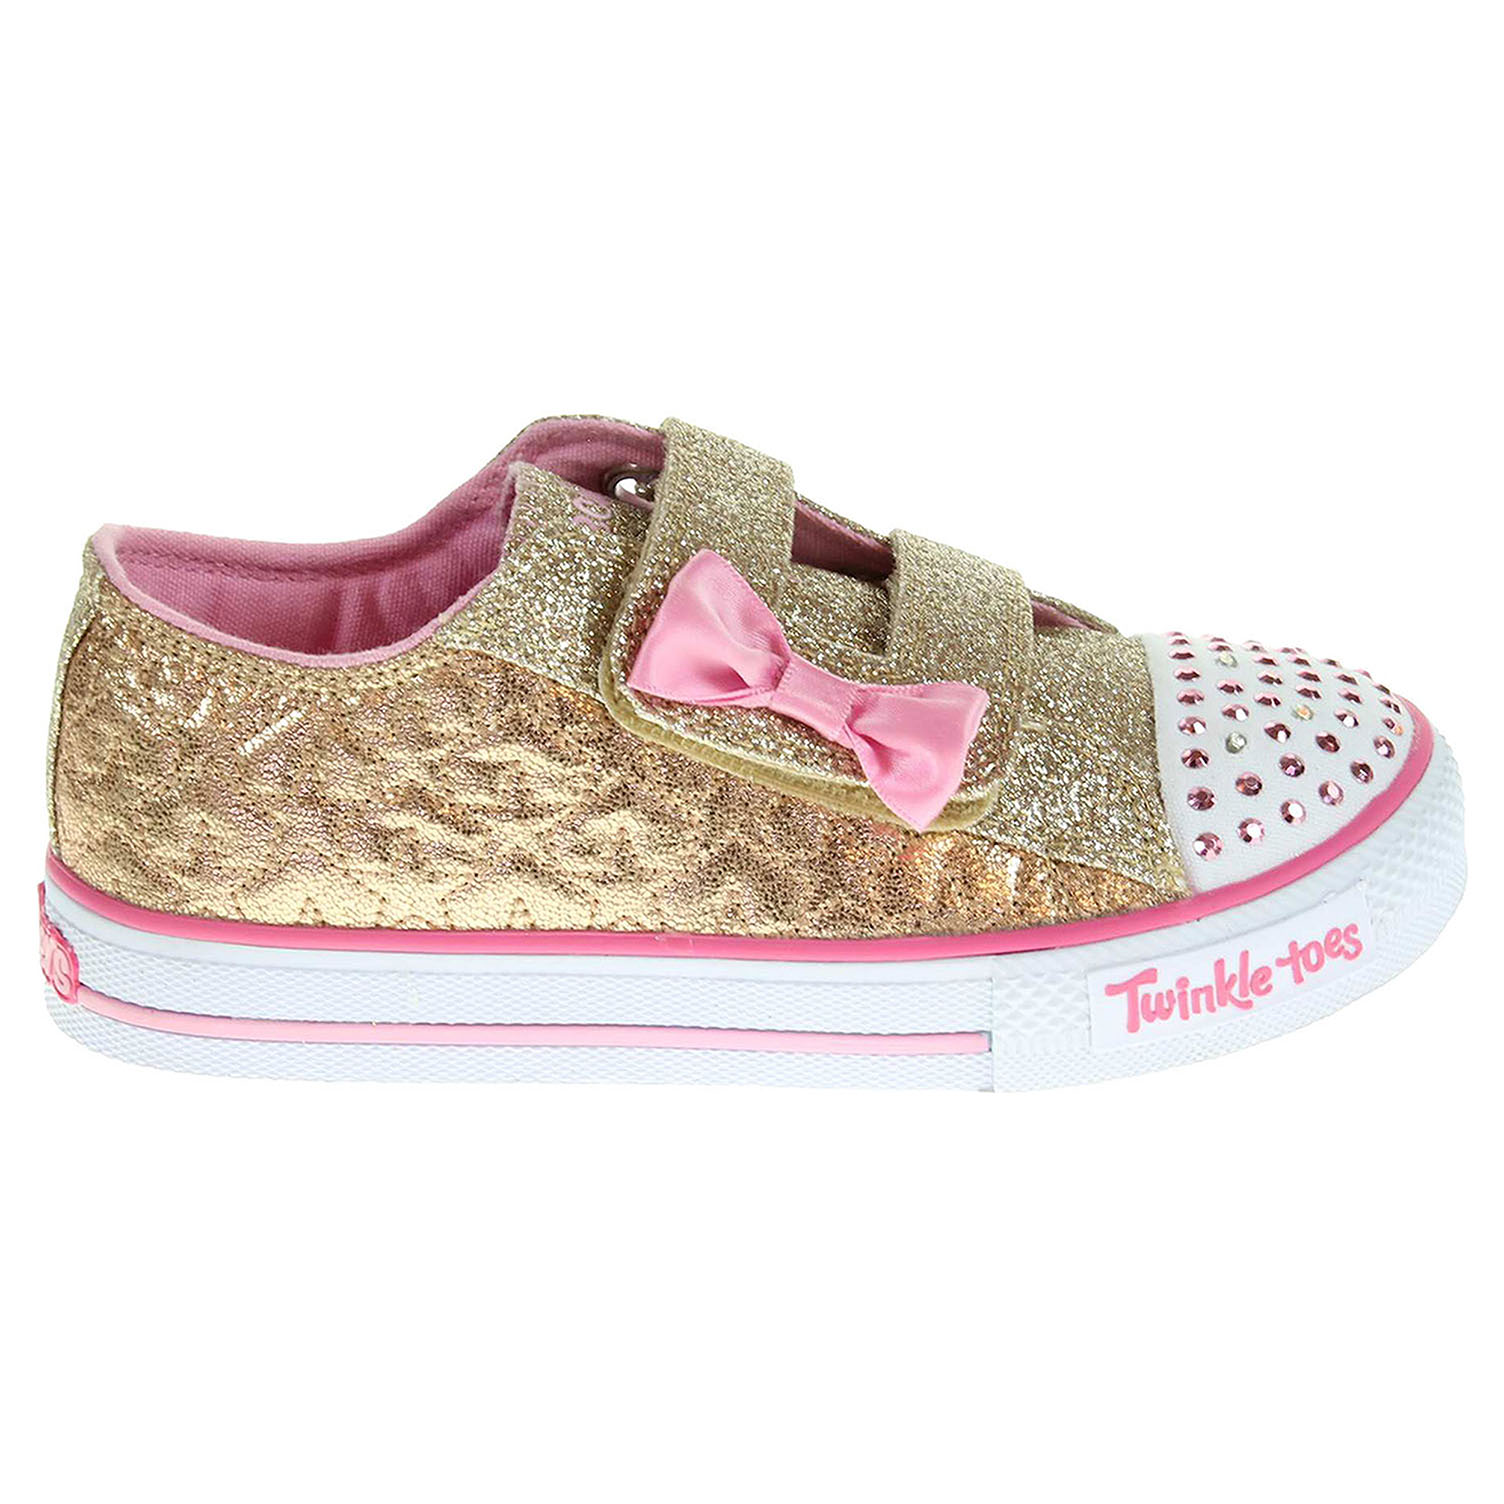 Ecco Skechers Starlight Style gold-pink 26600110